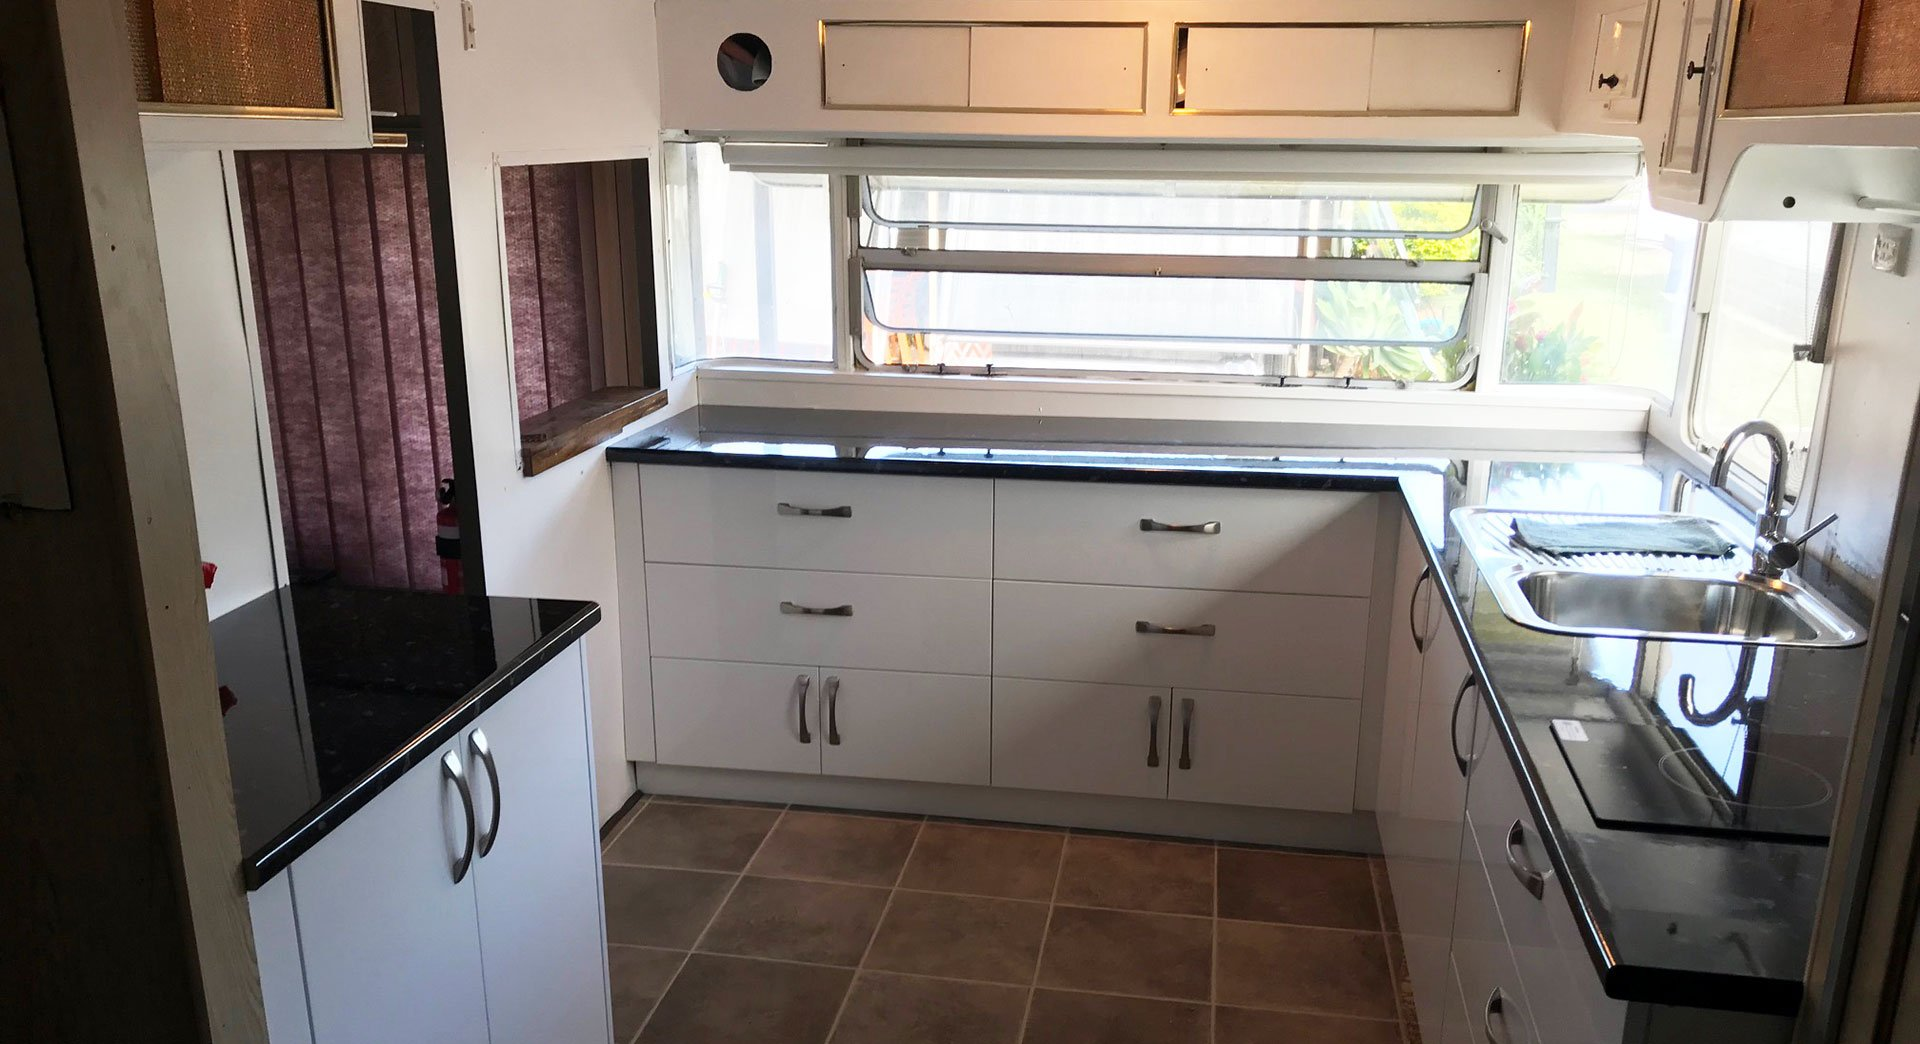 Port Stephens Kitchens - Caravan and Motorhome Conversions and Cabinetry